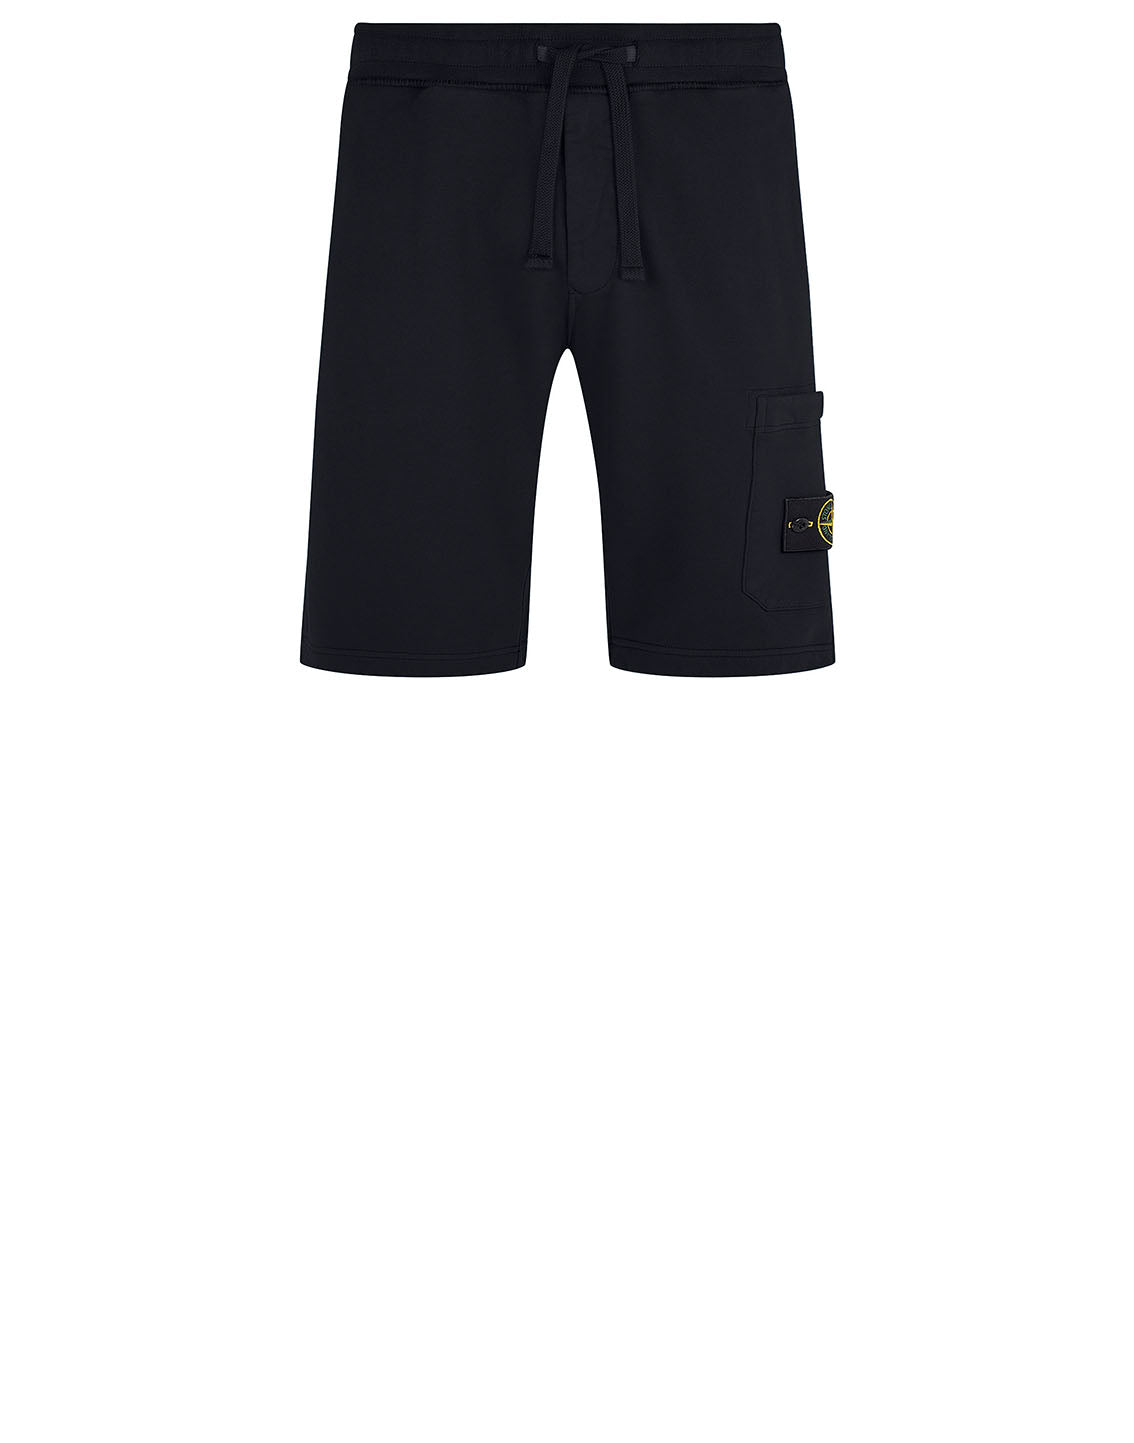 64620 Fleece Shorts in Navy